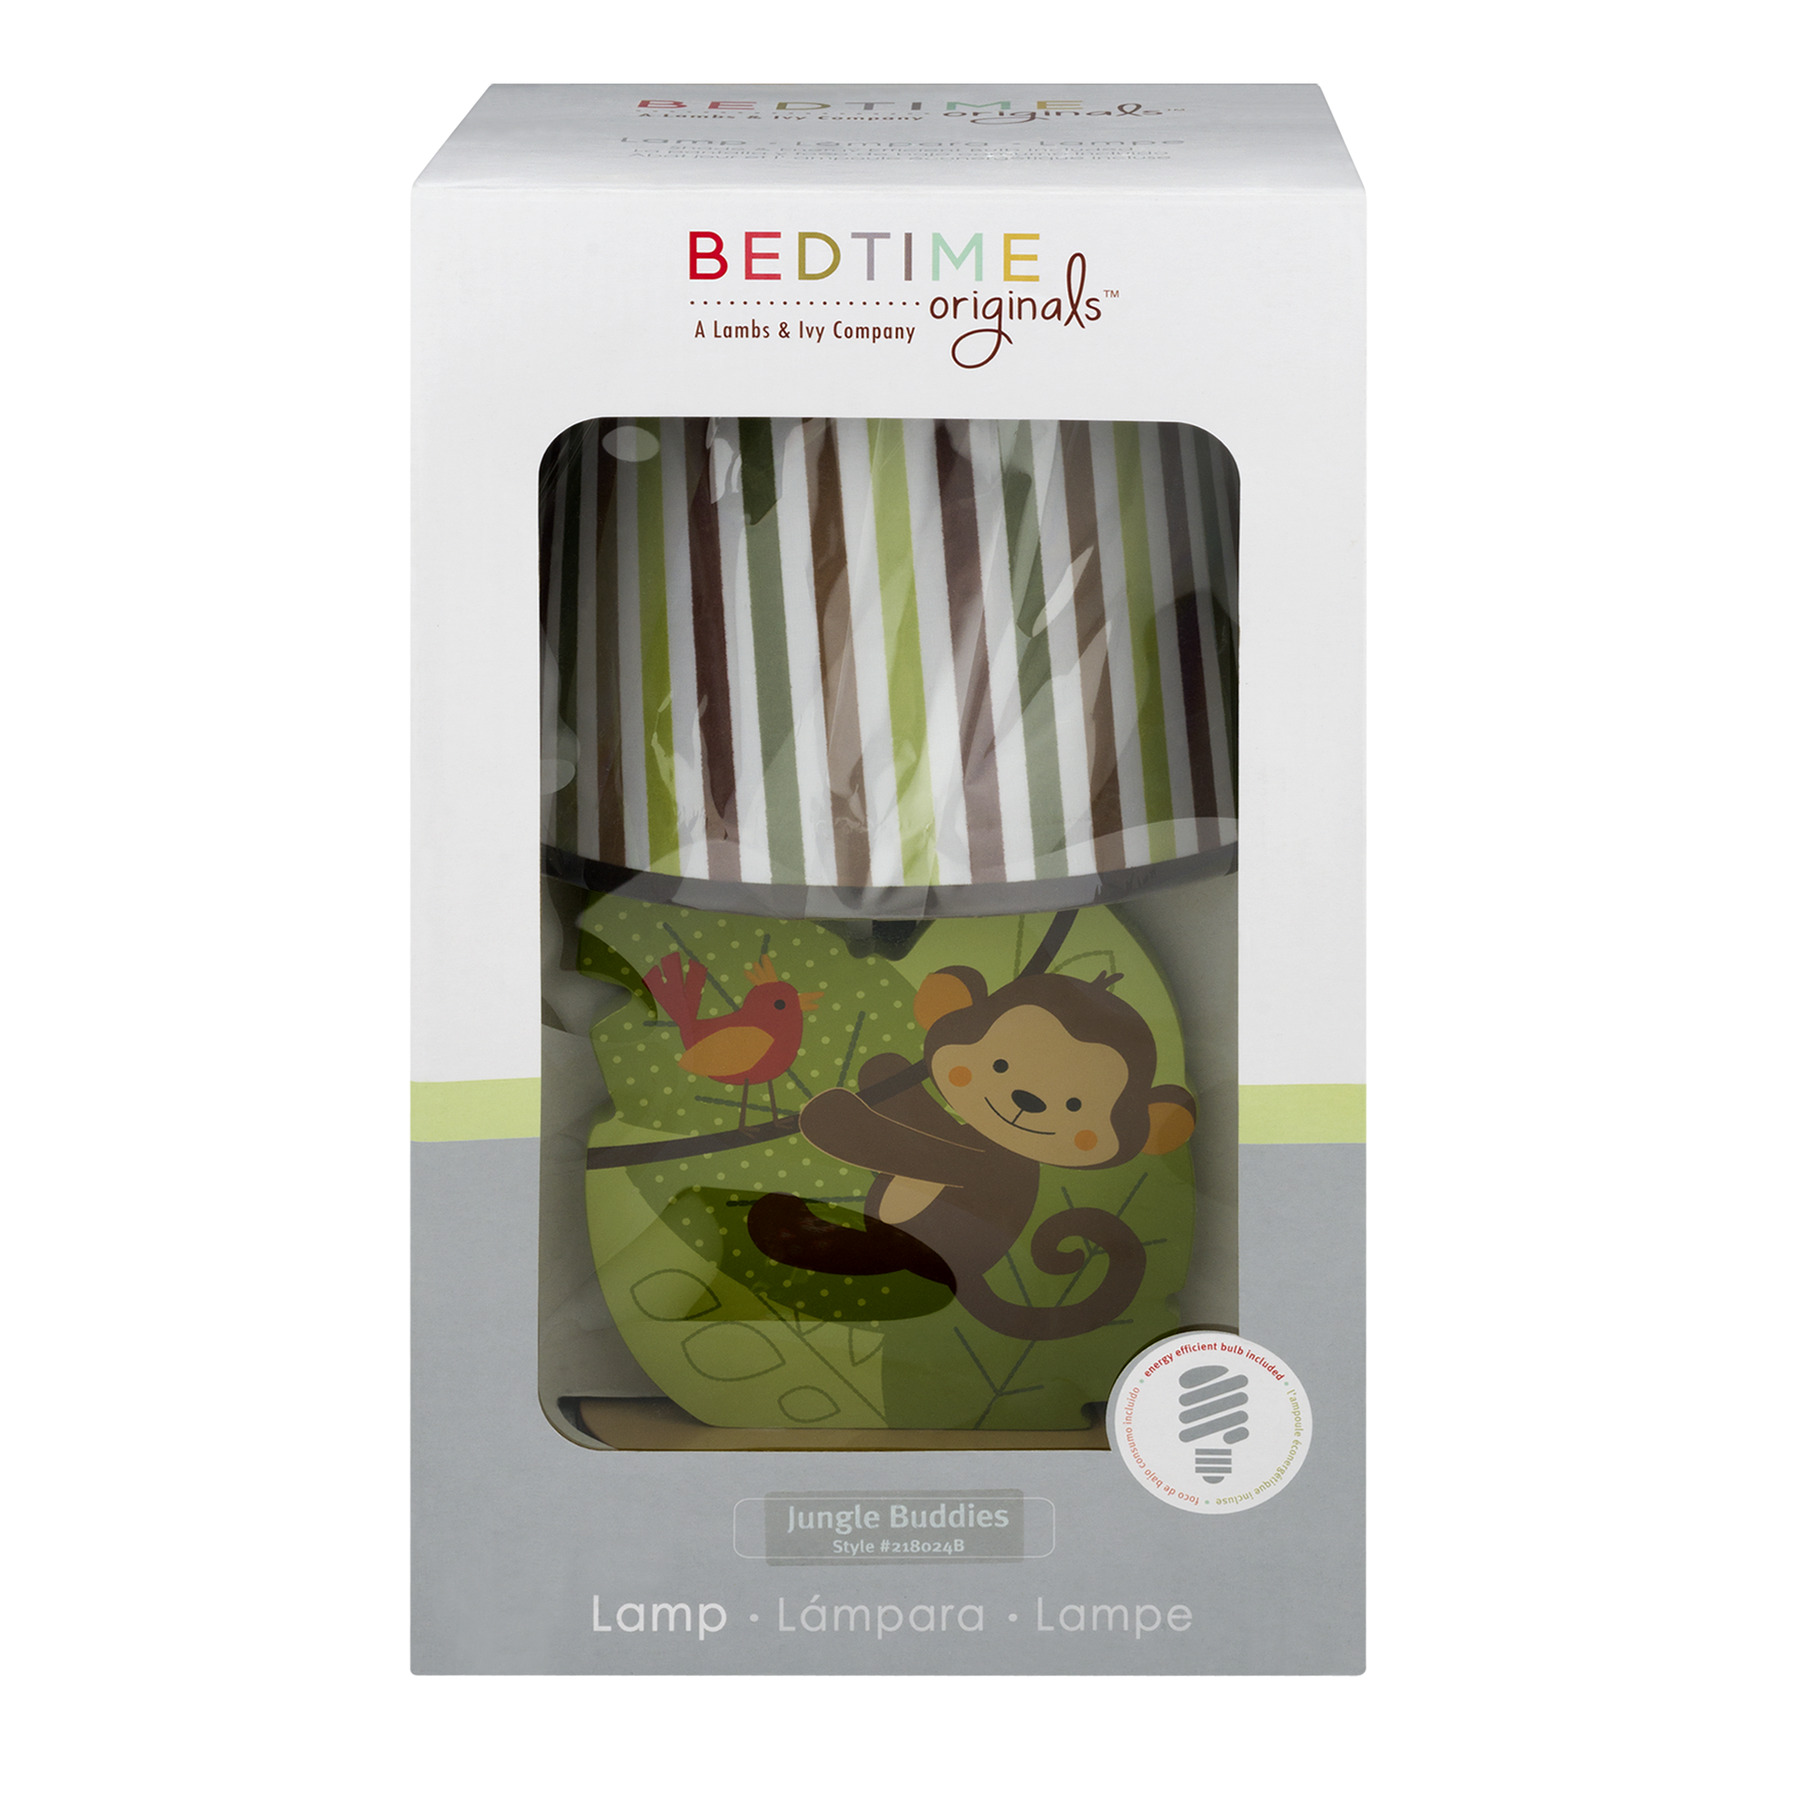 Bedtime Originals Lamp Jungle Buddies - 1.0 CT1.0 CT